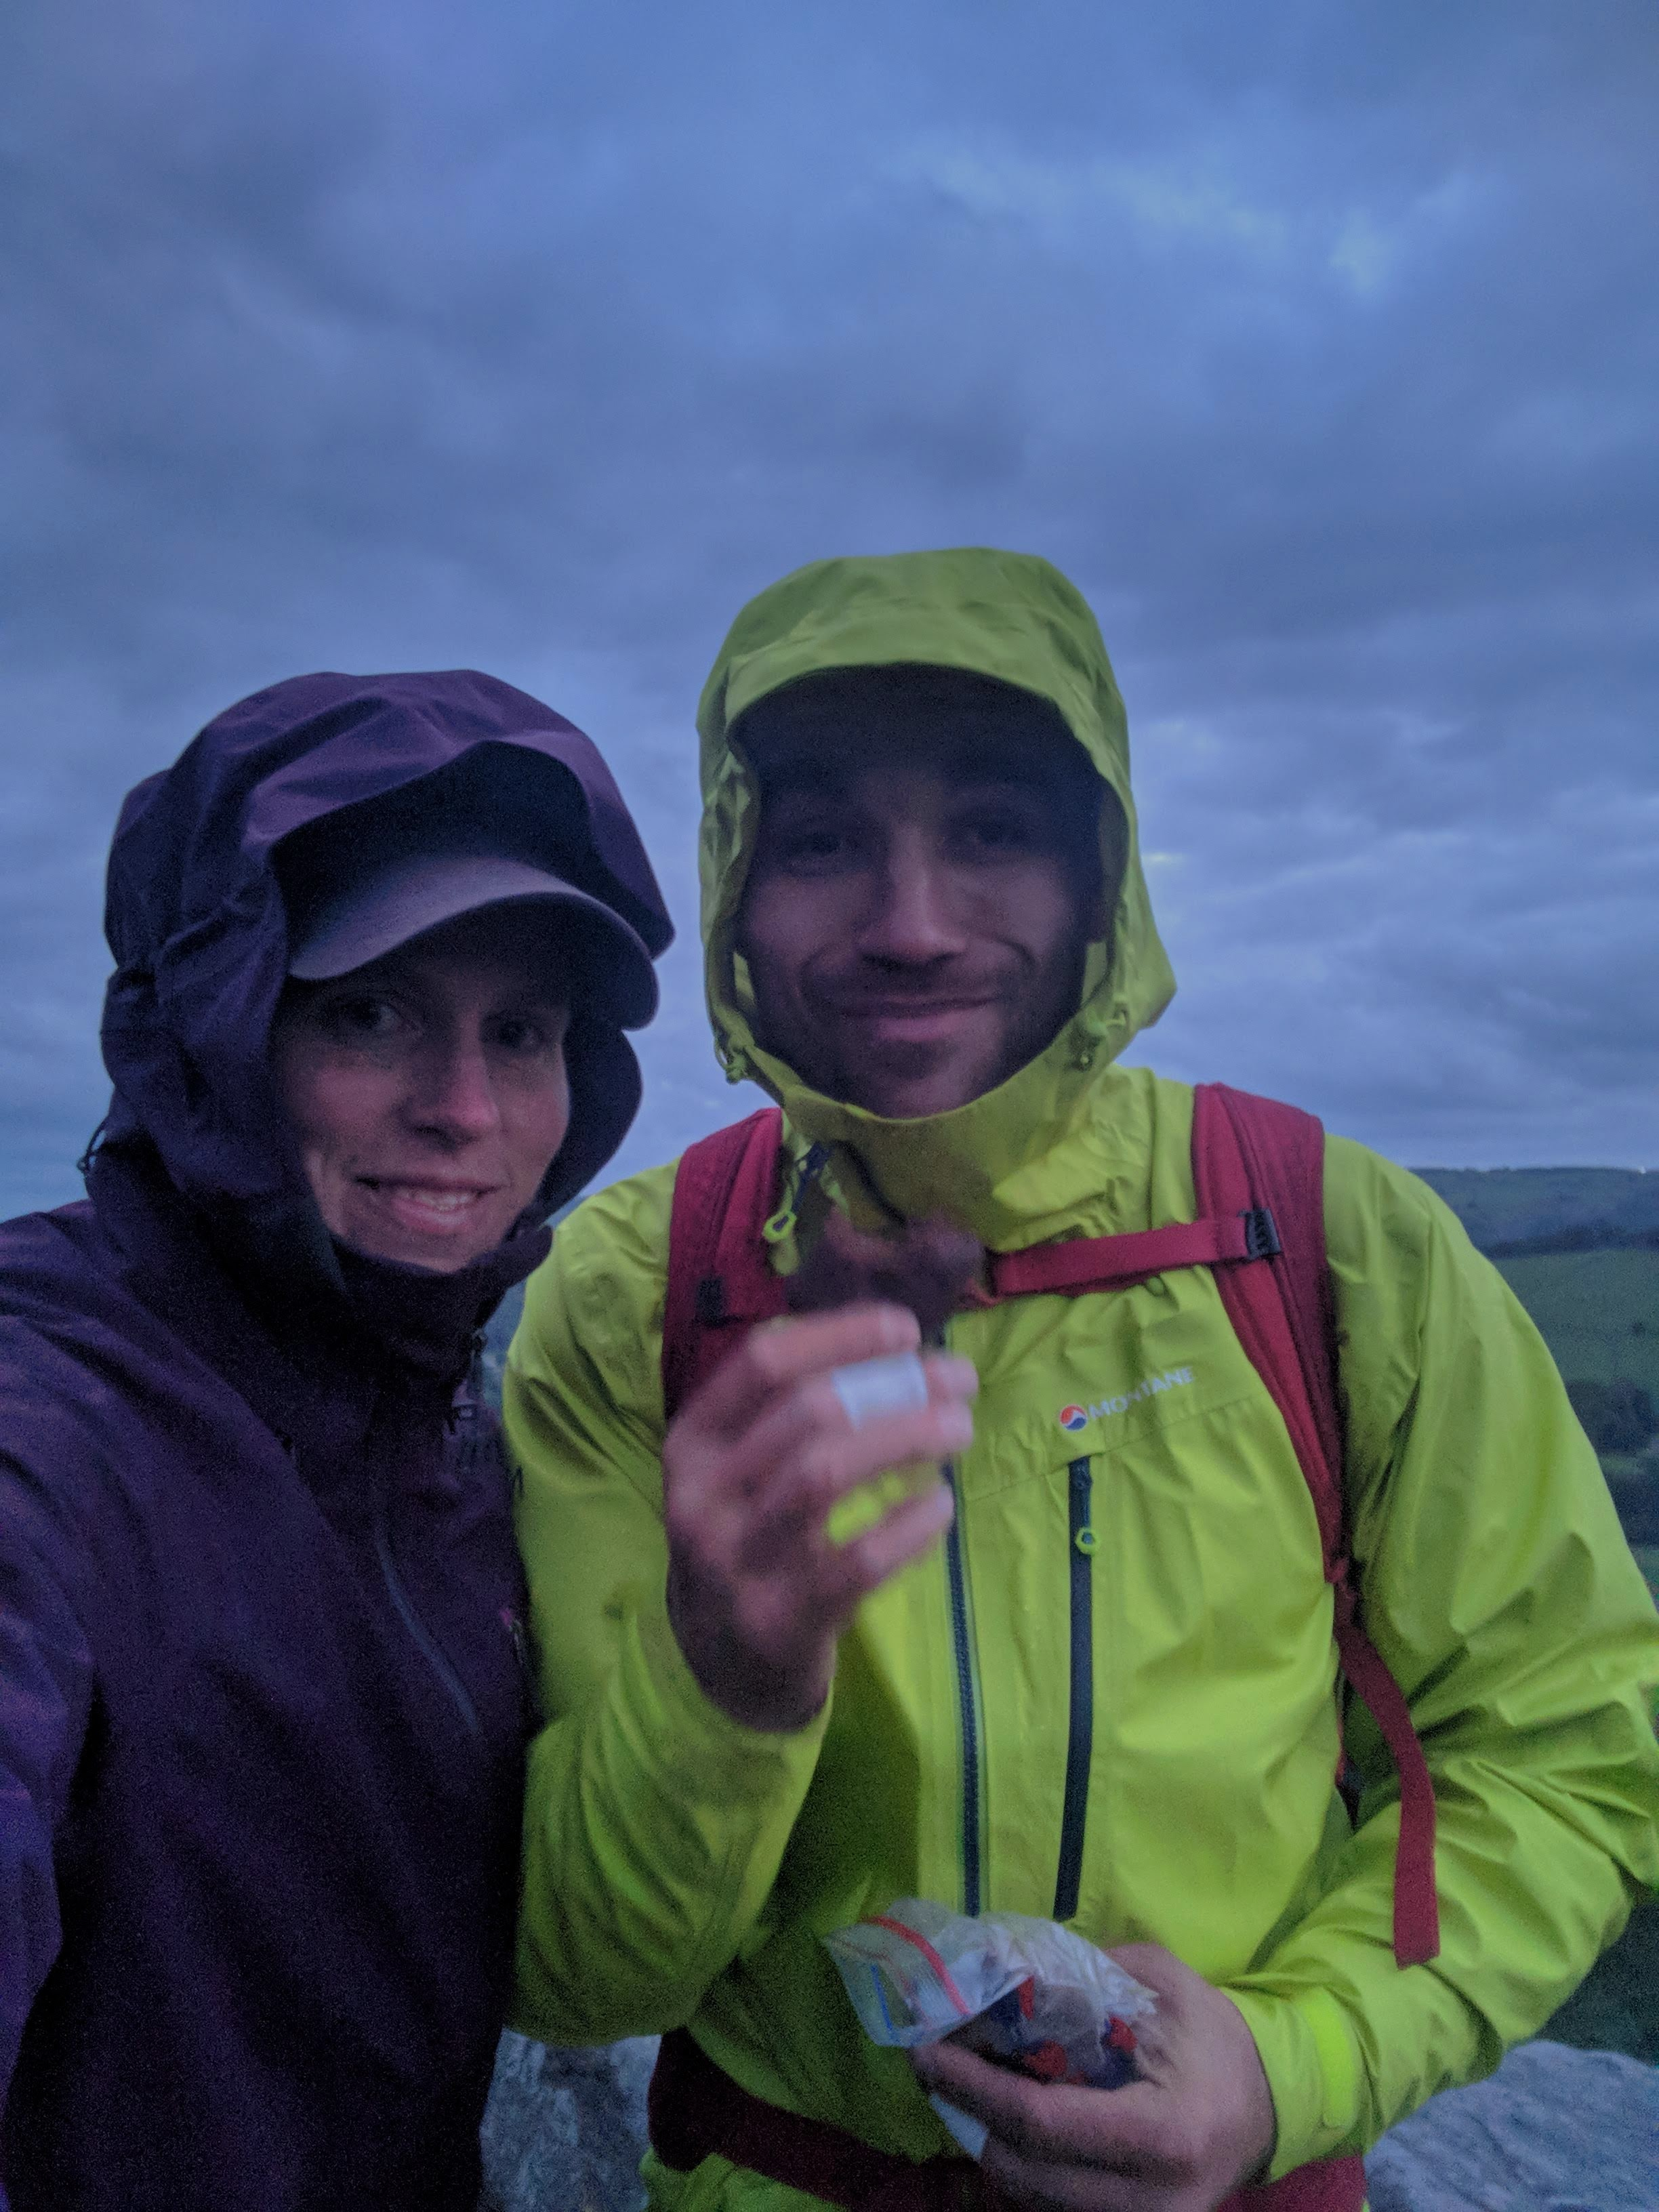 A picture of Molly and Jesse with their waterproof jackets on with hoods up, looking very tired, as it starts to get dark.